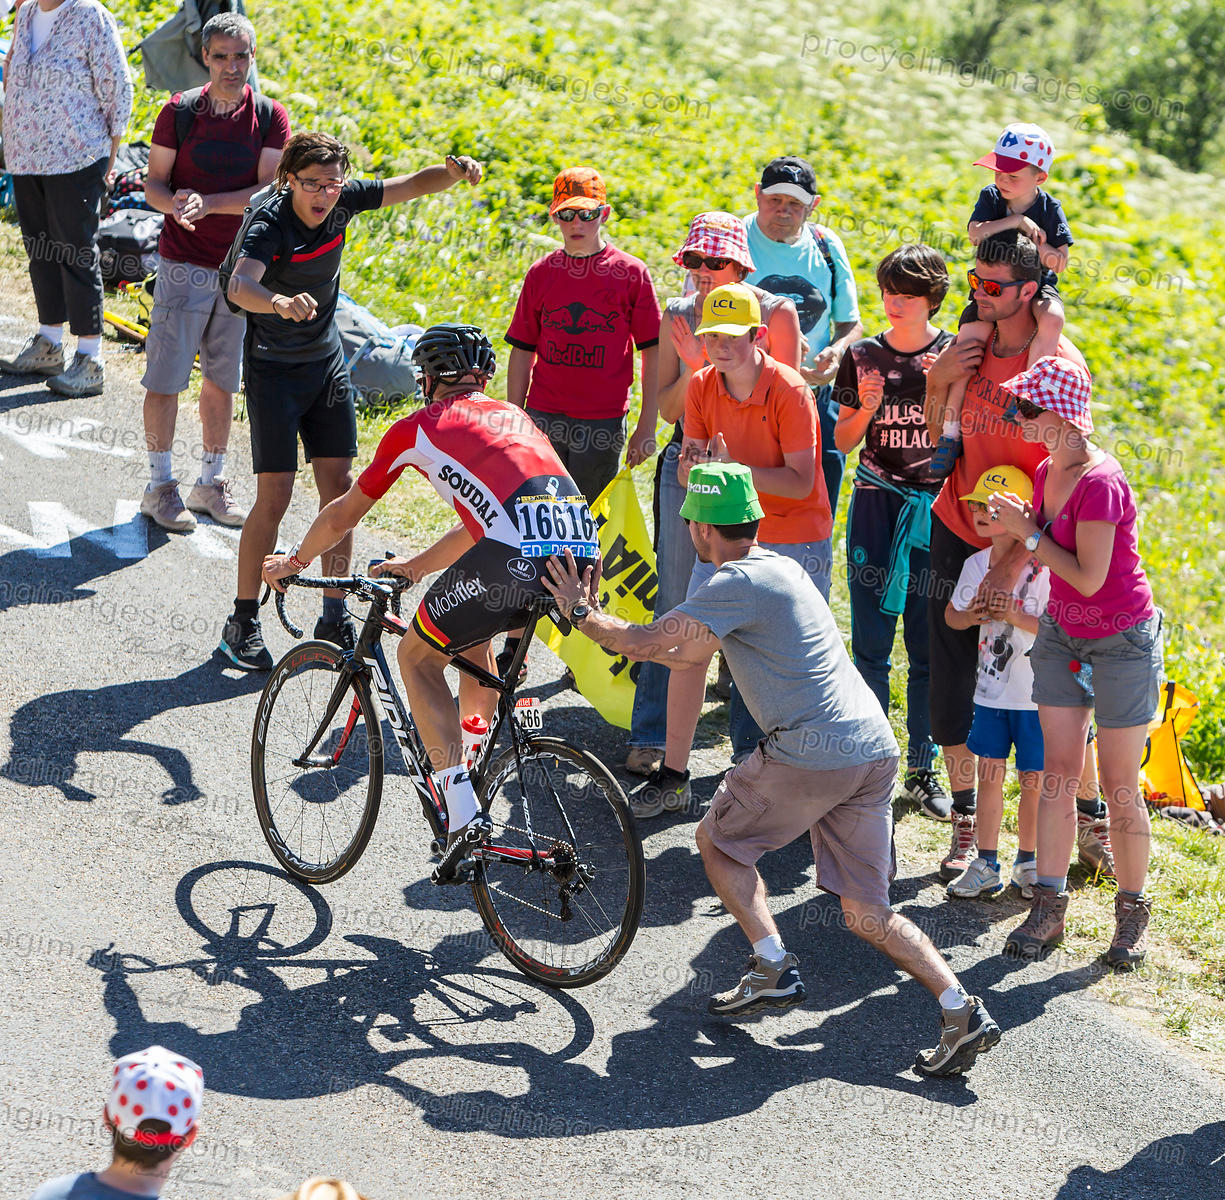 Spectator Pushing a Cyclist - Tour de France 2016